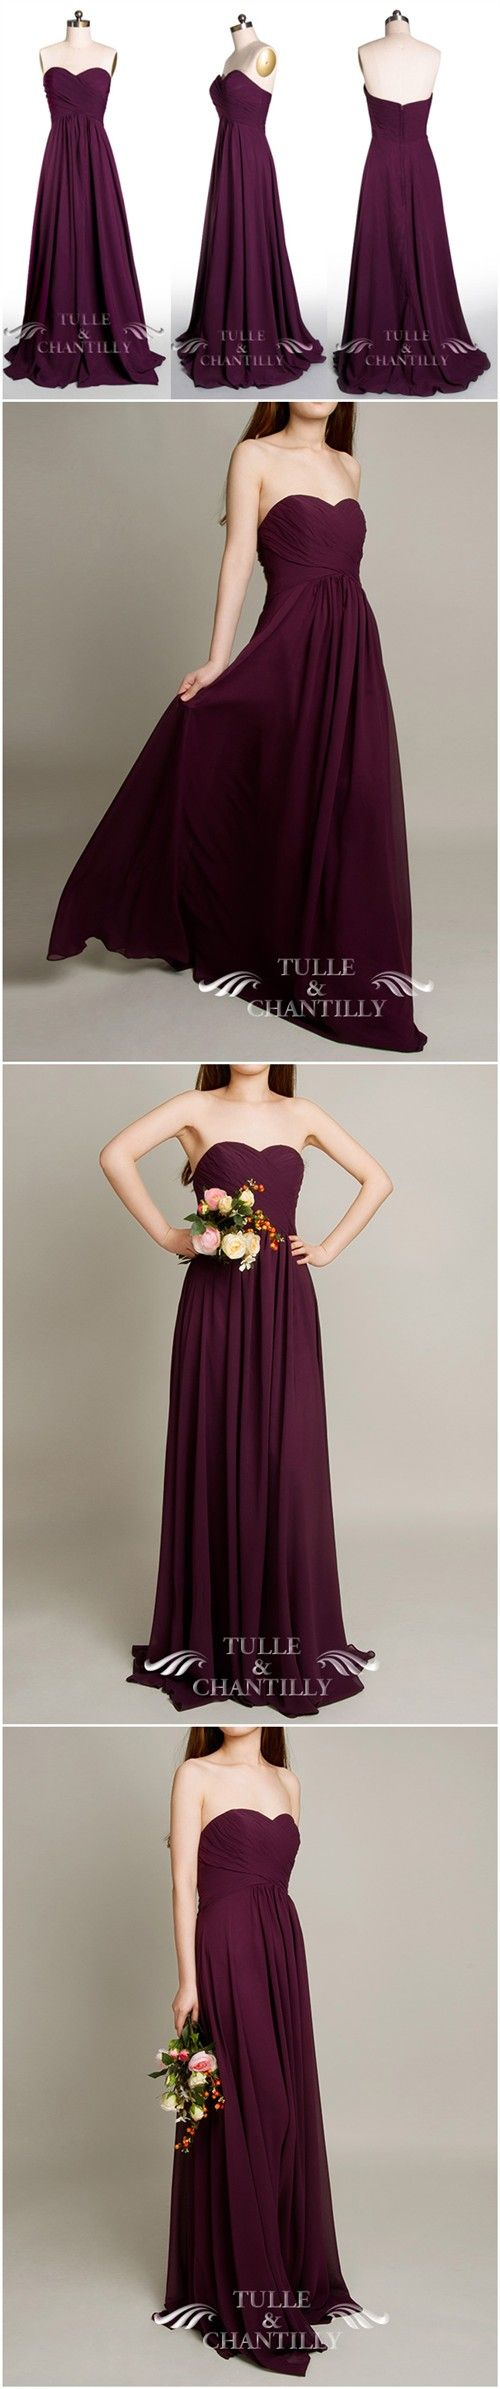 purple wedding ideas - Floor Length A-line Aubergine Dark Purple Bridesmaid Dresses - See more at: http://www.tulleandchantilly.com/floor-length-aline-aubergine-dark-purple-bridesmaid-gown-p-616.html